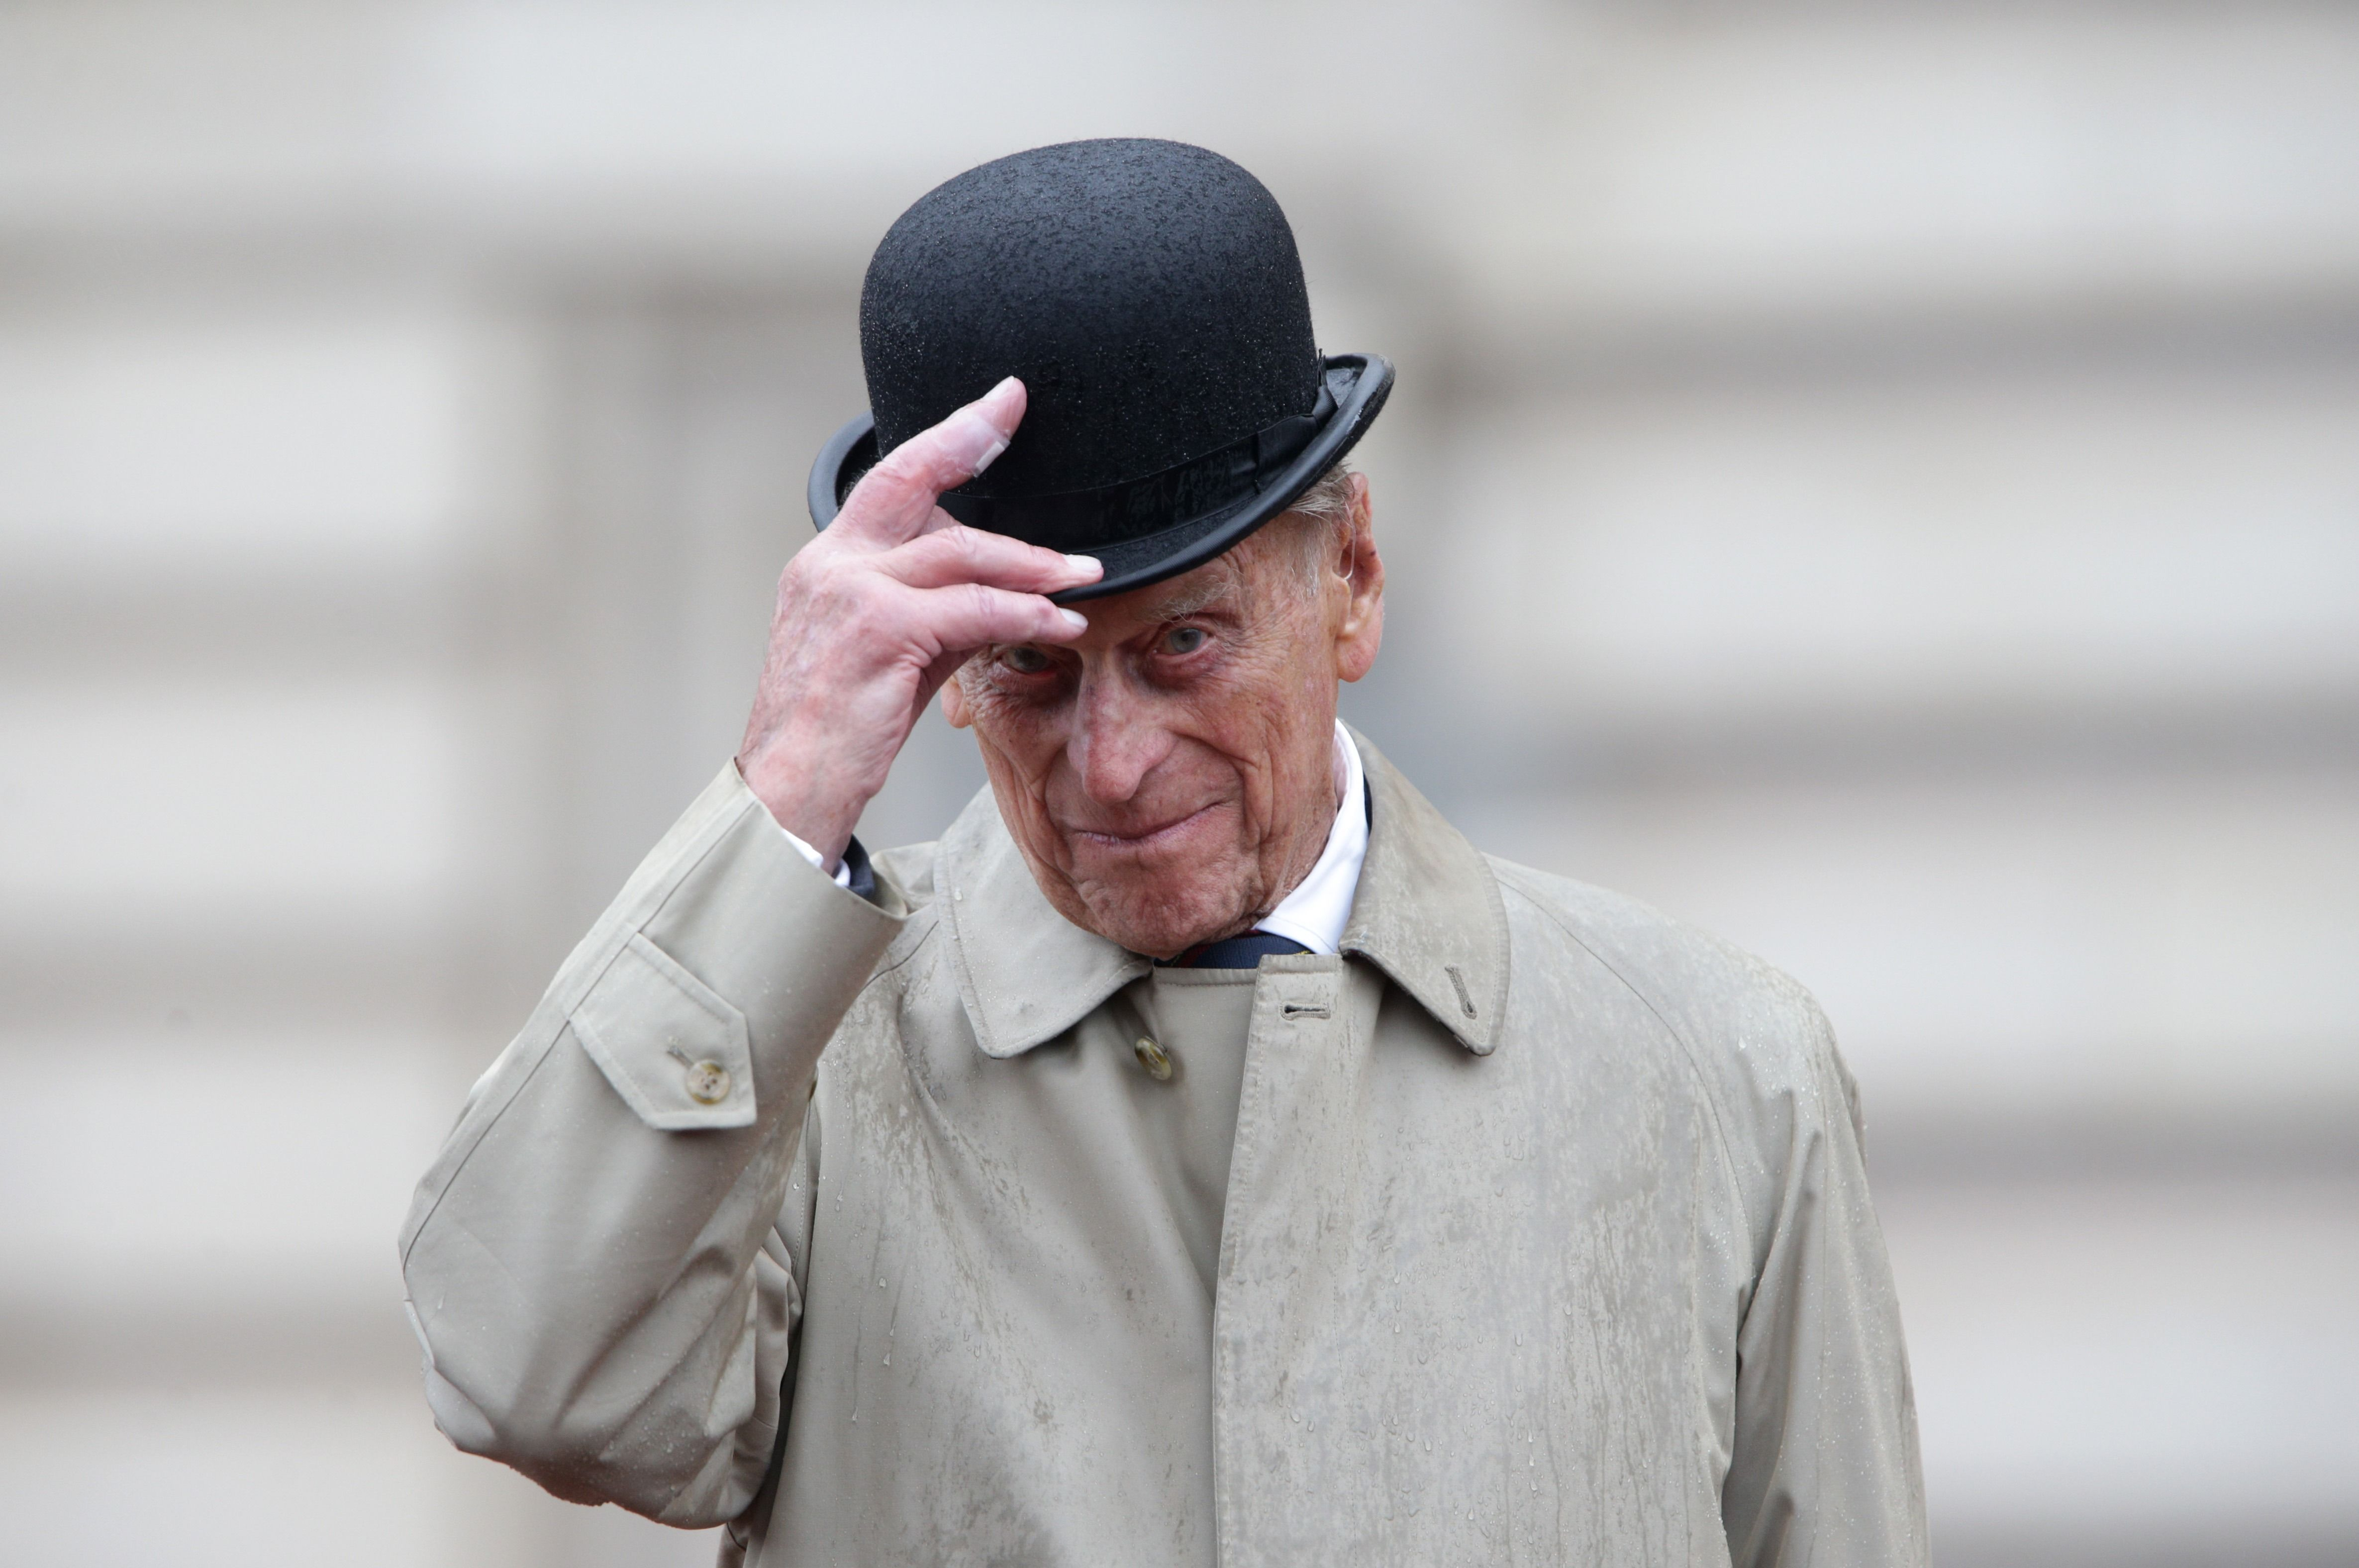 Prince Philip's Cause Of Death Has Been Confirmed Three Weeks After He Passed Away